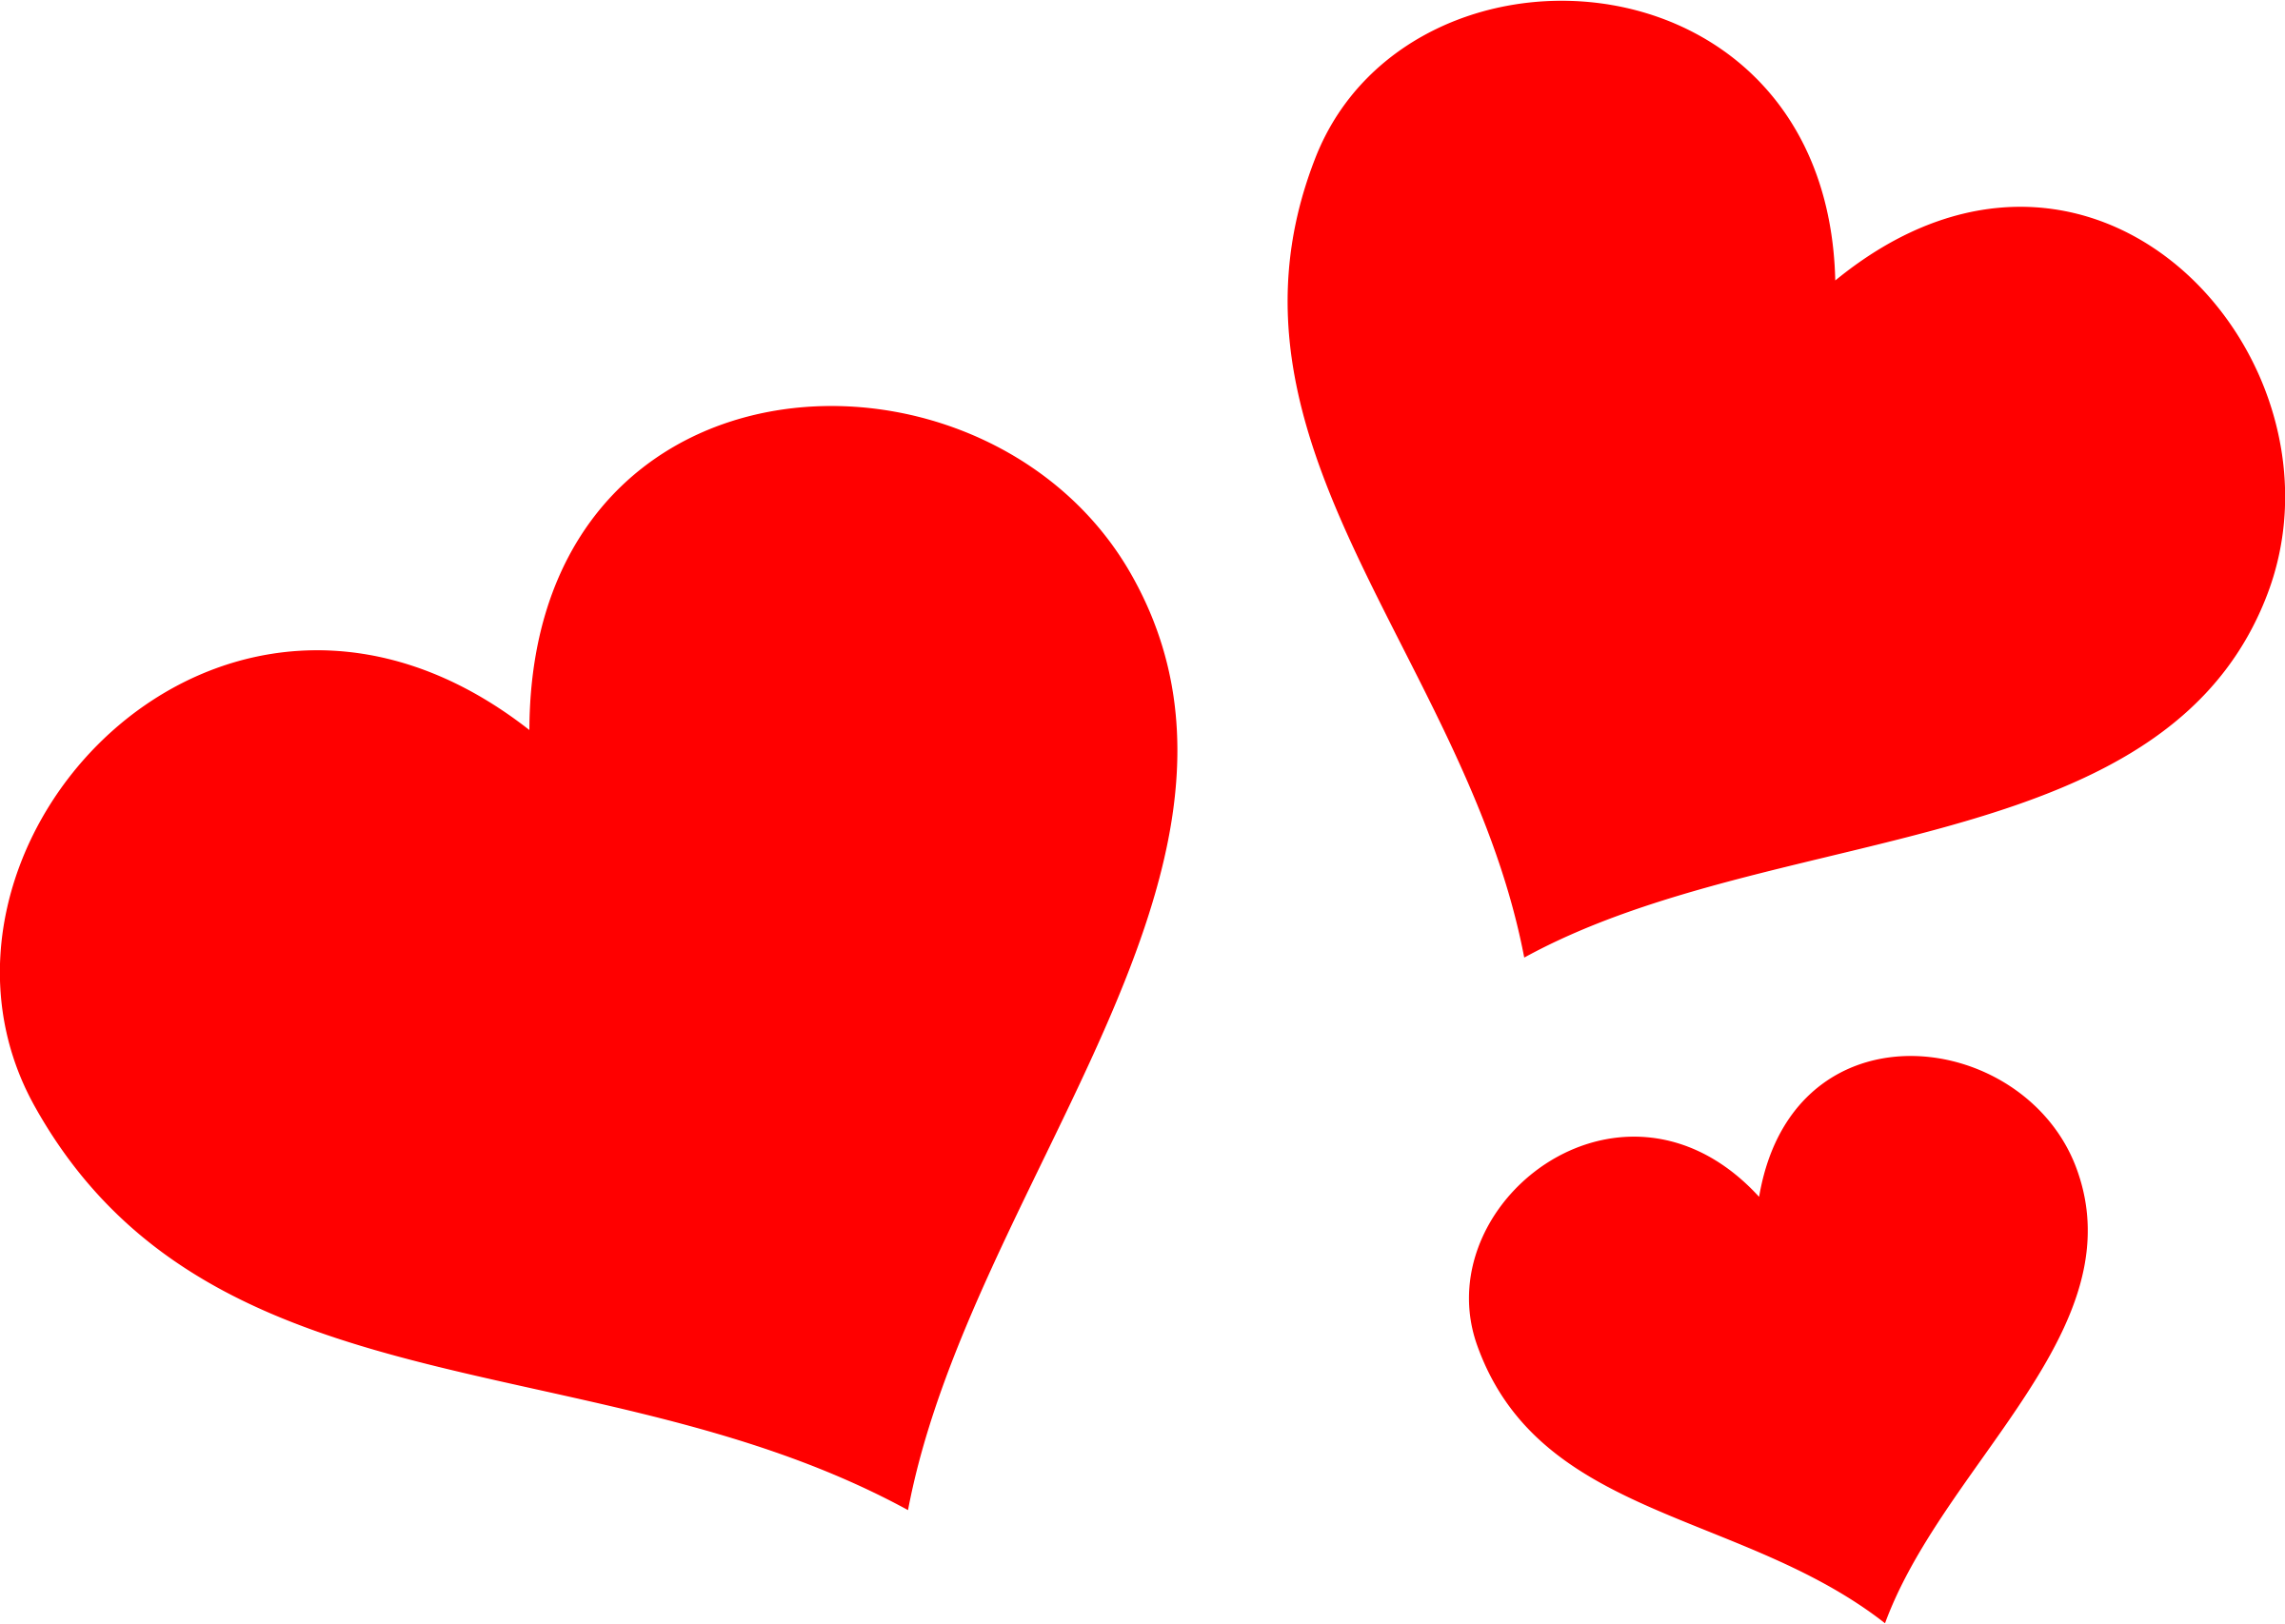 Hearts png. Clip art red heart